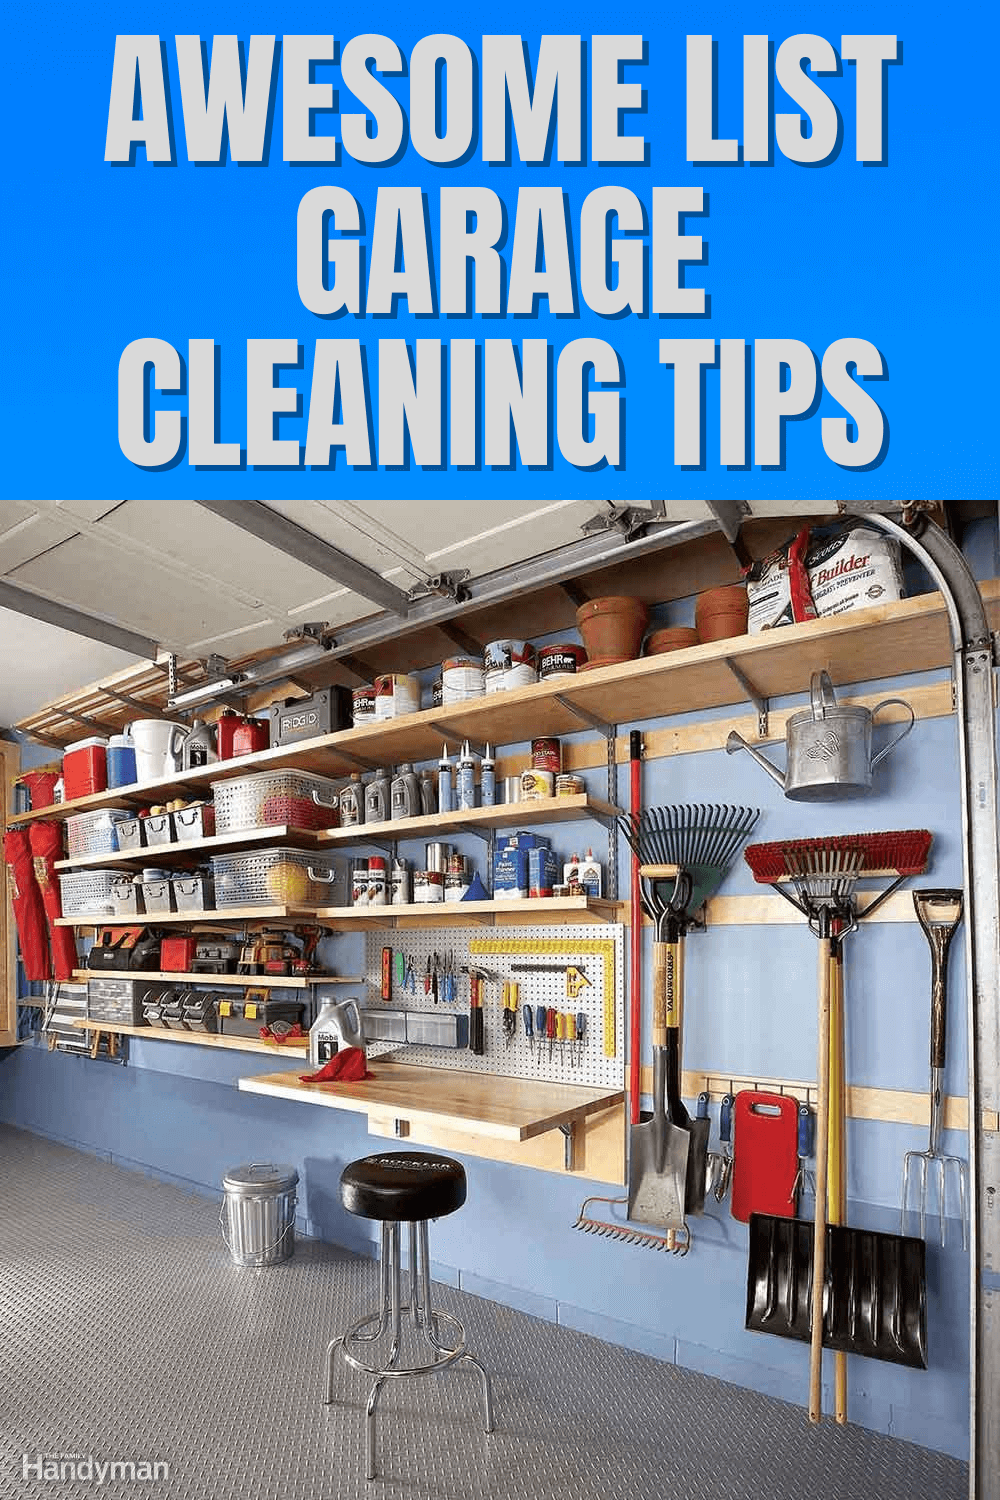 AWESOME LIST GARAGE CLEANING TIPS